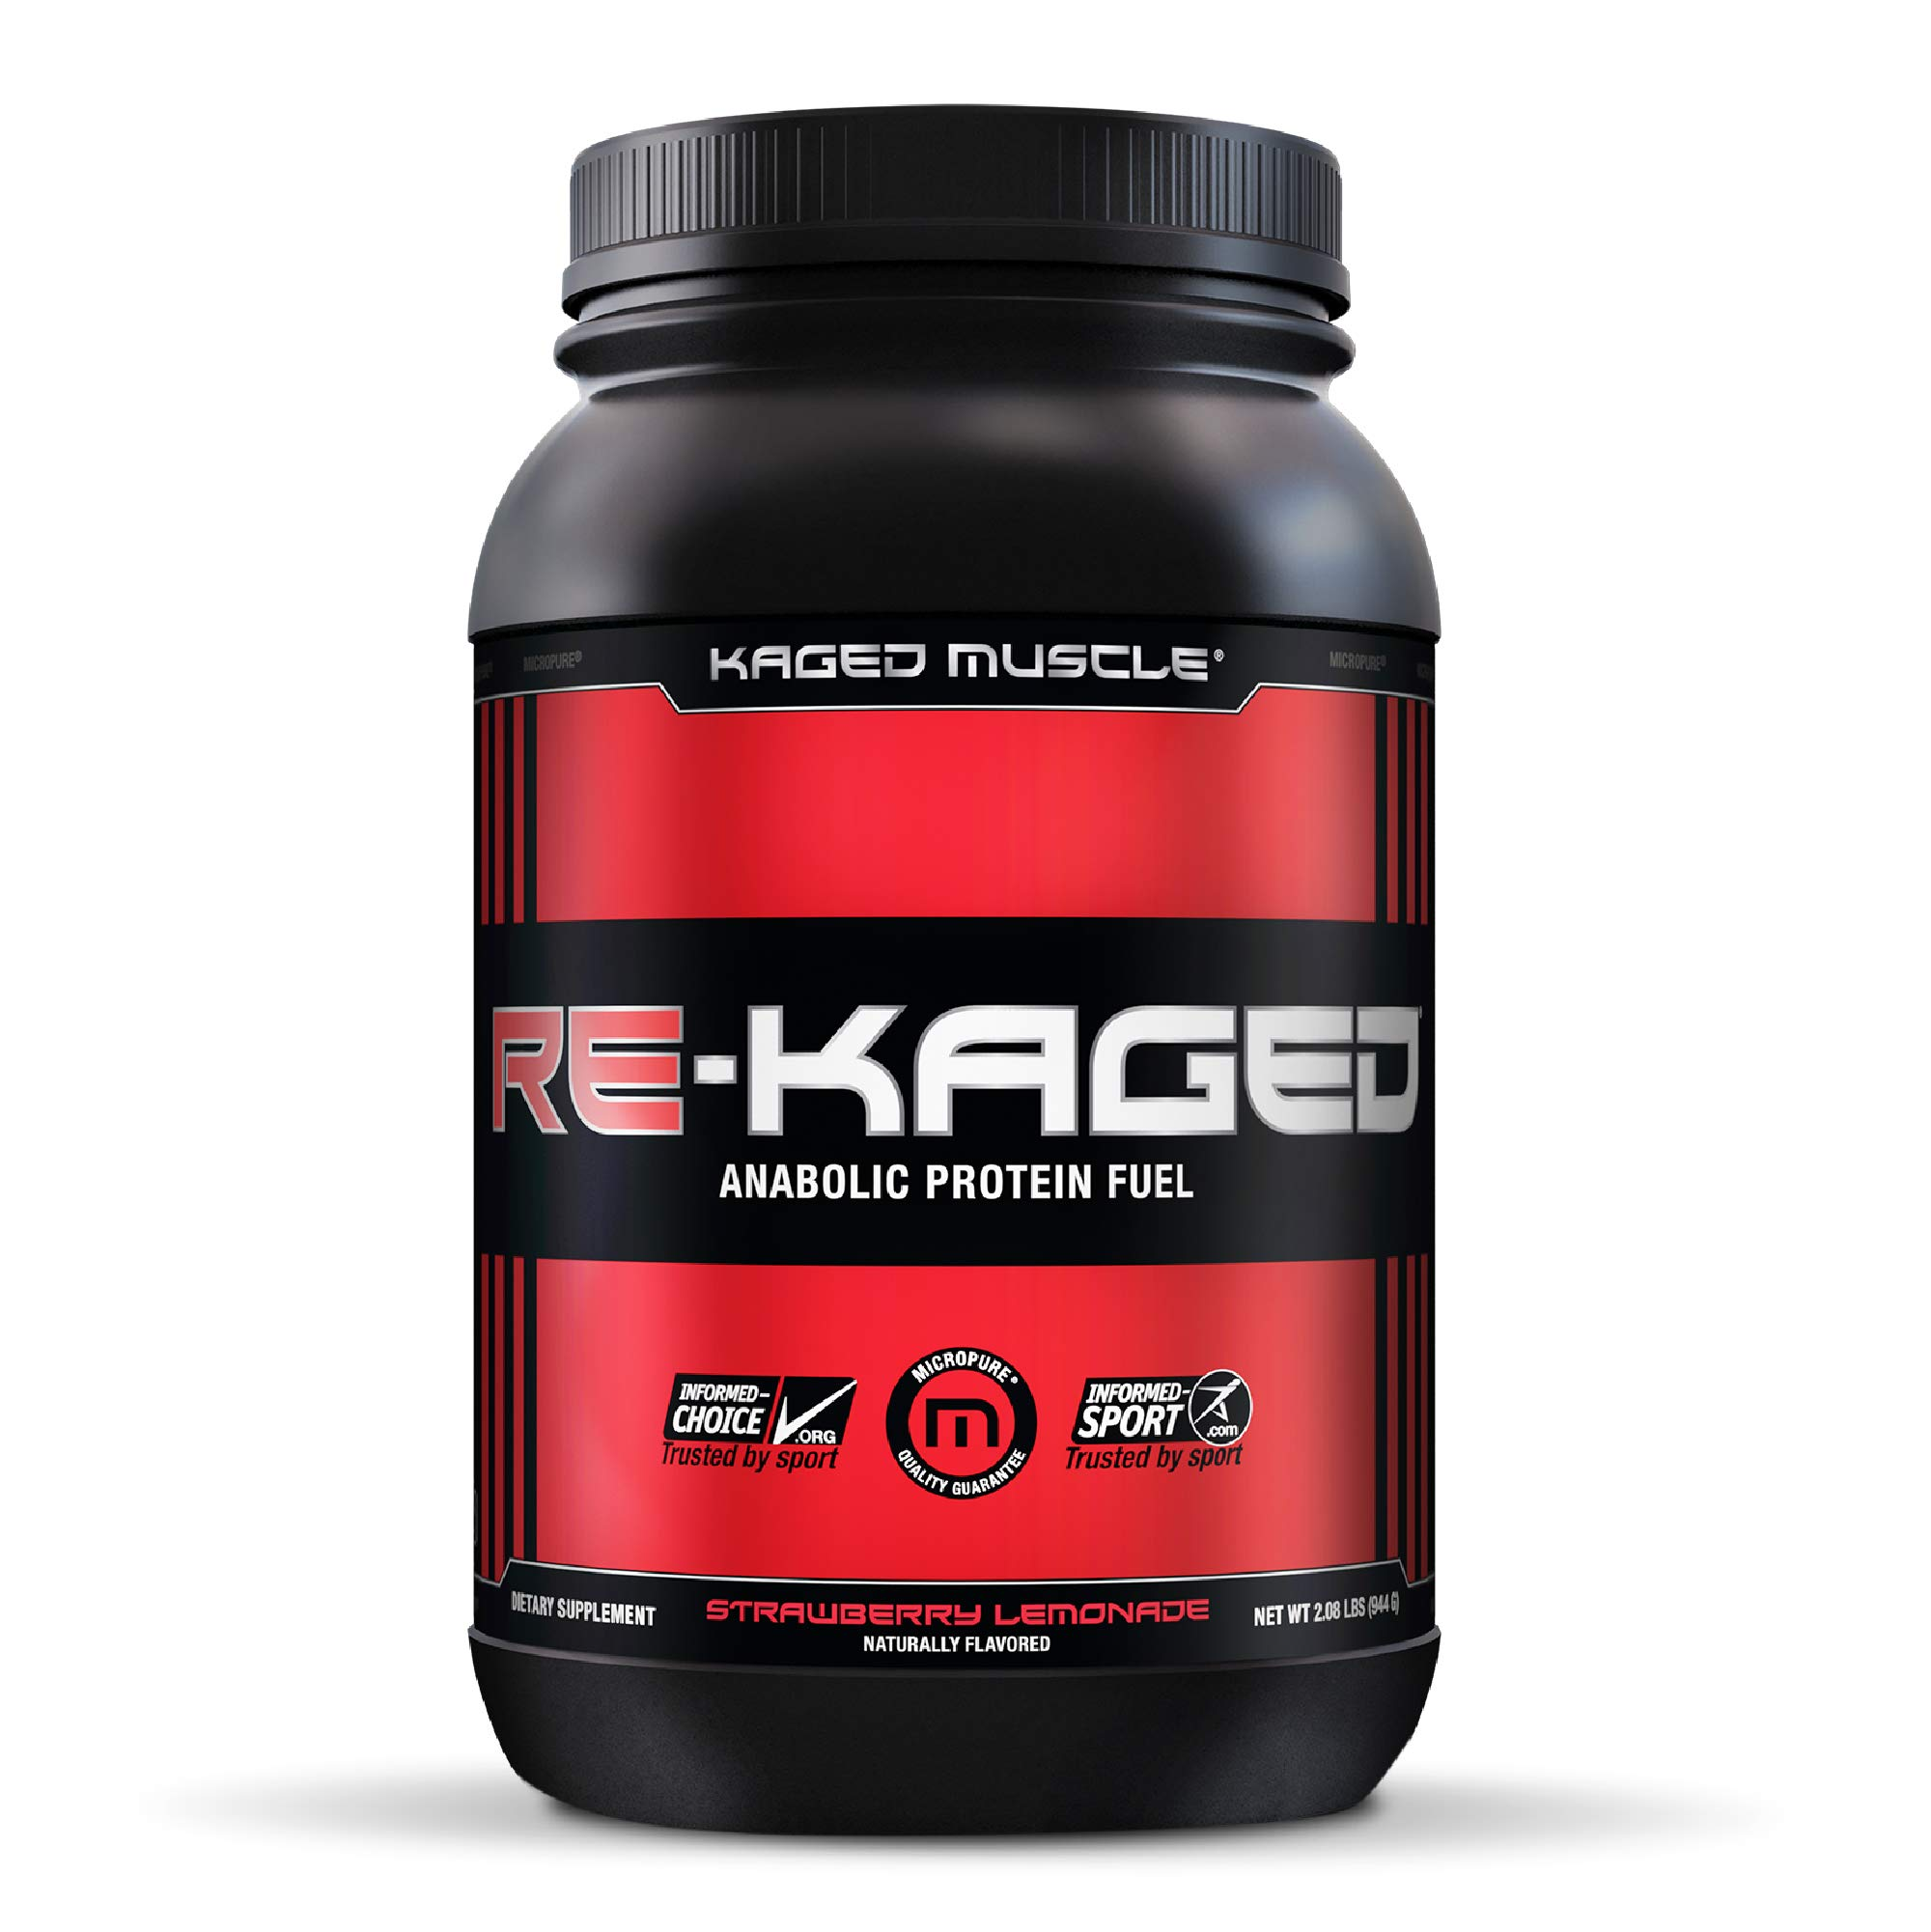 Post Workout Protein Powder, RE-KAGED Whey Protein Powder, Great Tasting Protein Shake with Whey Protein Isolate for Fast Post Workout Recovery with Complete BCAAs & EAAs, Strawberry Lemonade